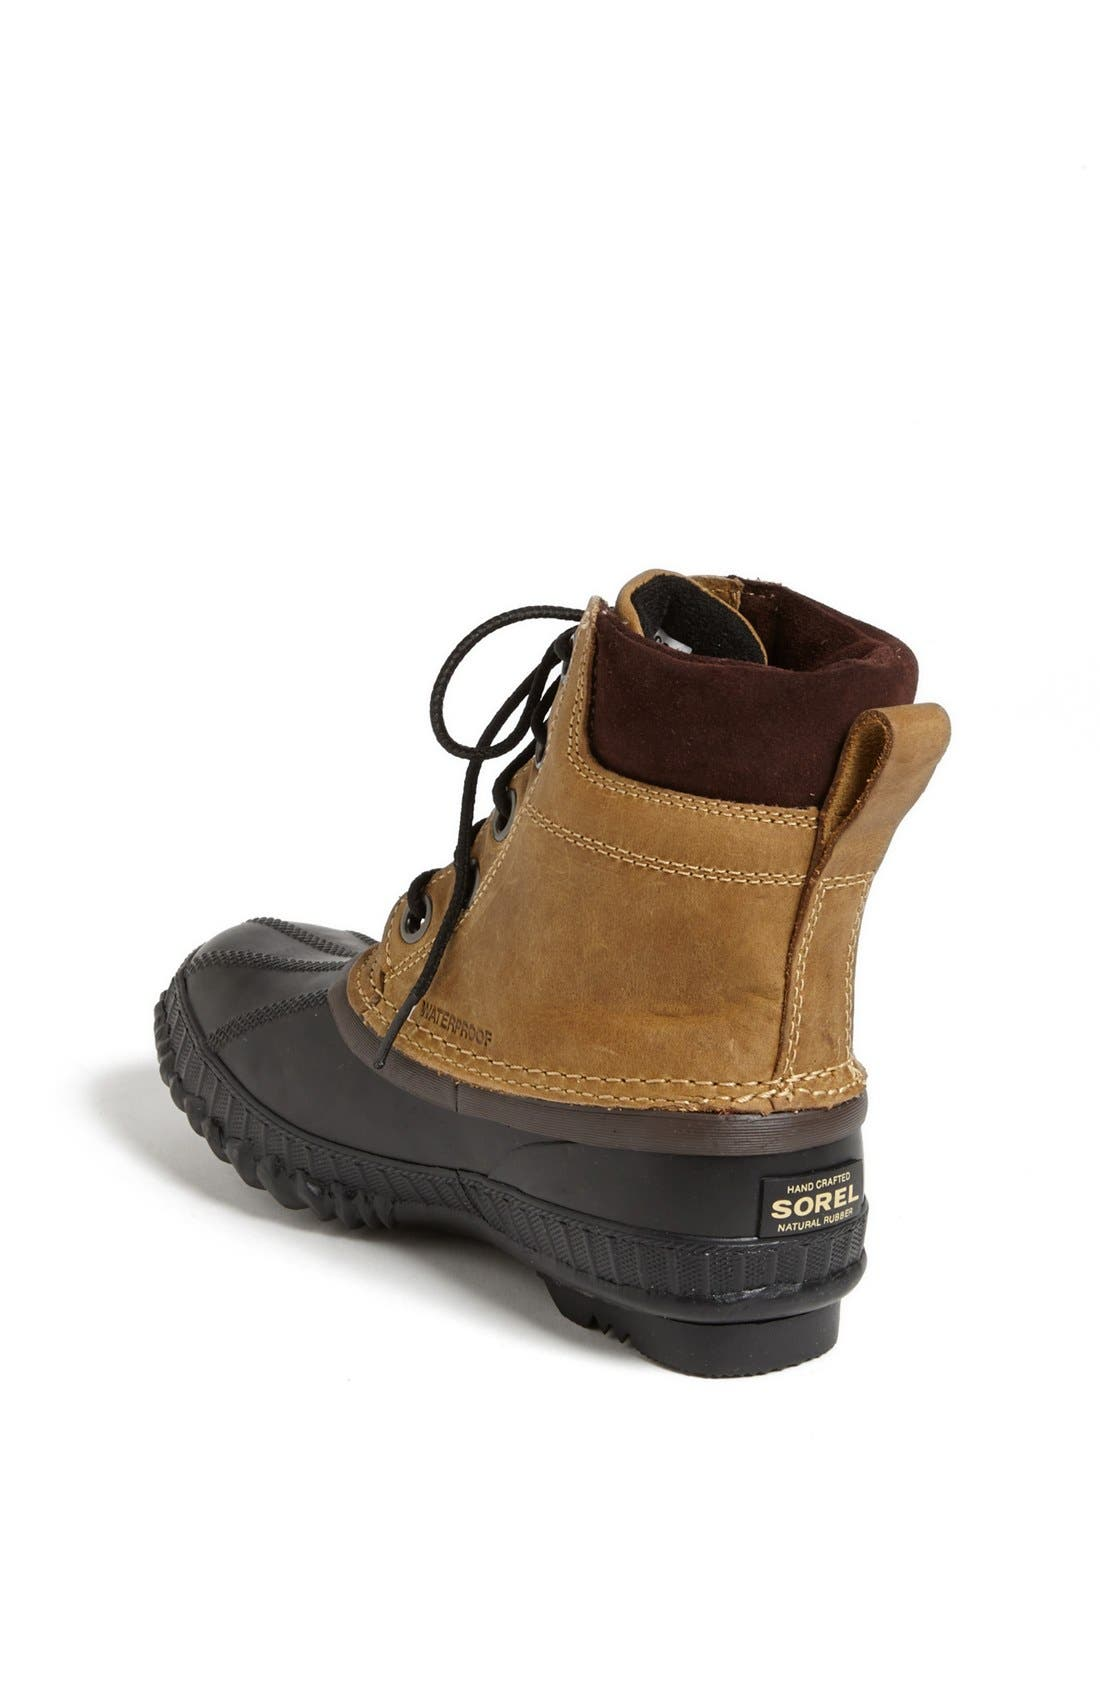 Alternate Image 2  - SOREL 'Cheyenne' Boot (Little Kid & Big Kid)